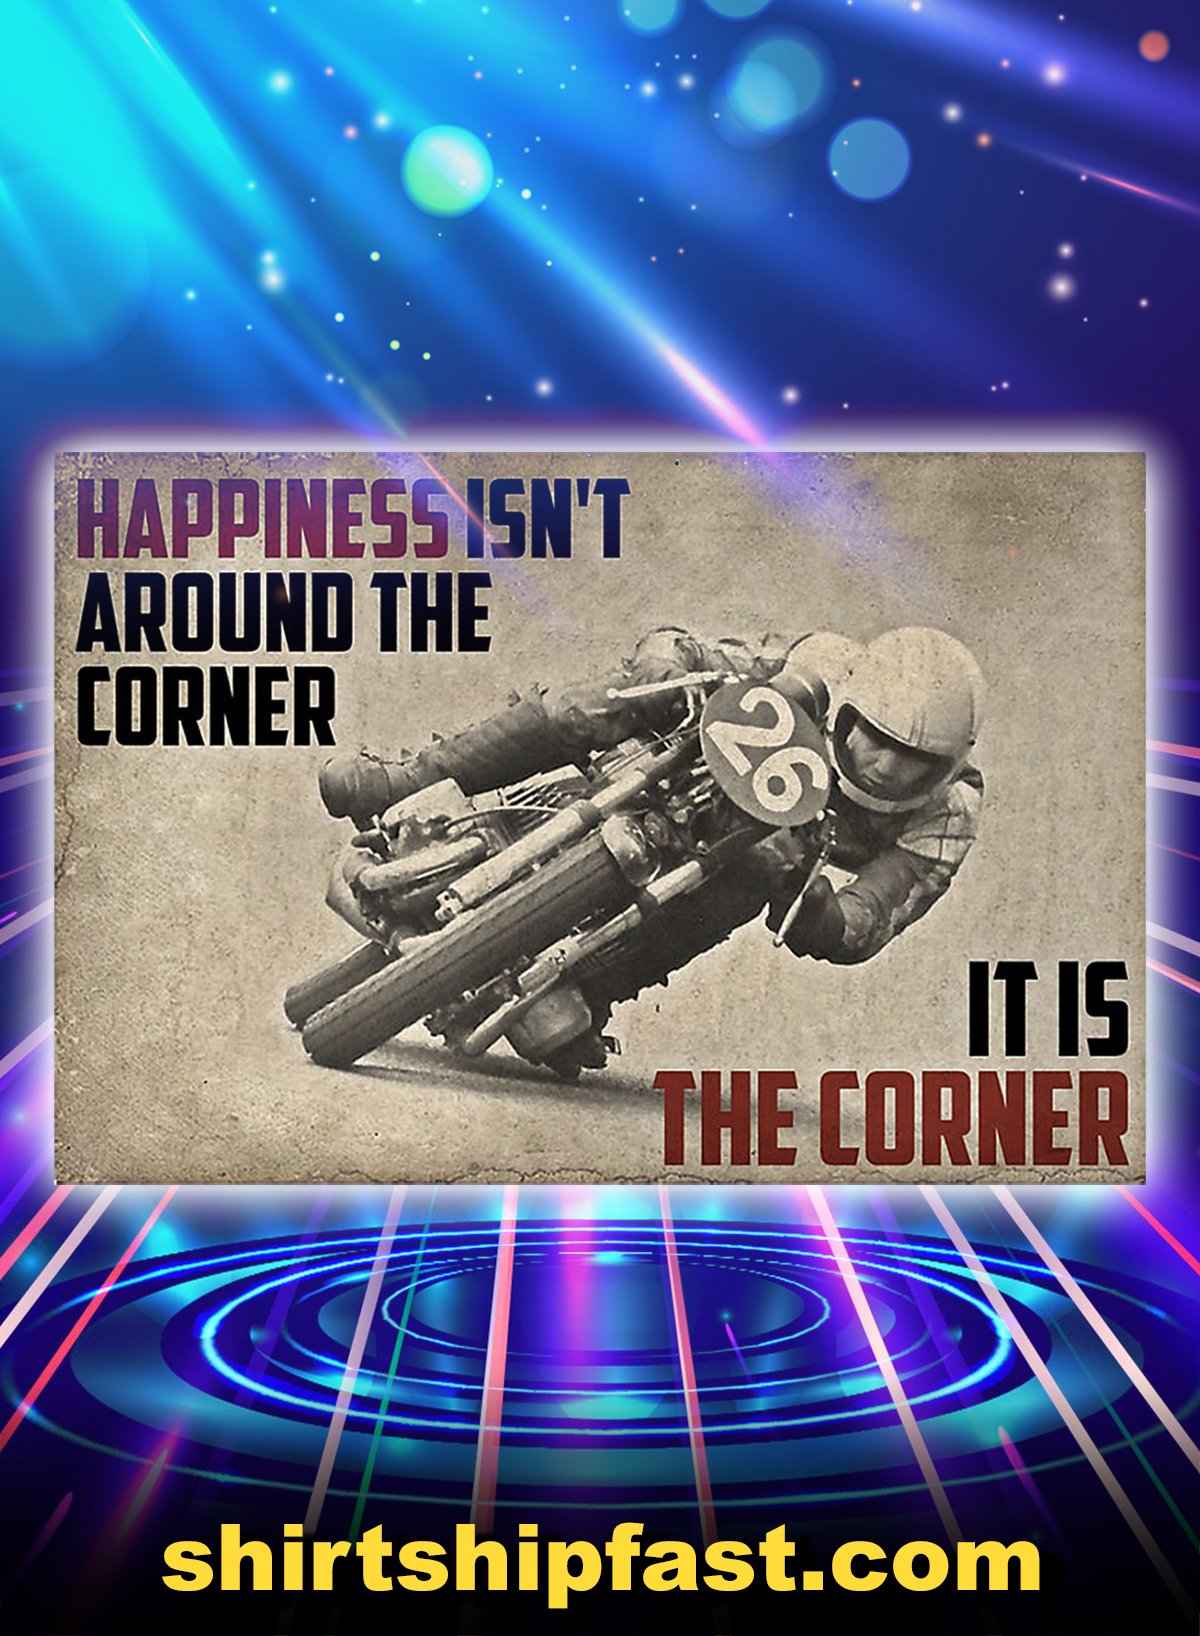 Motorcycle happiness isn't around the corner poster and canvas prints - A1